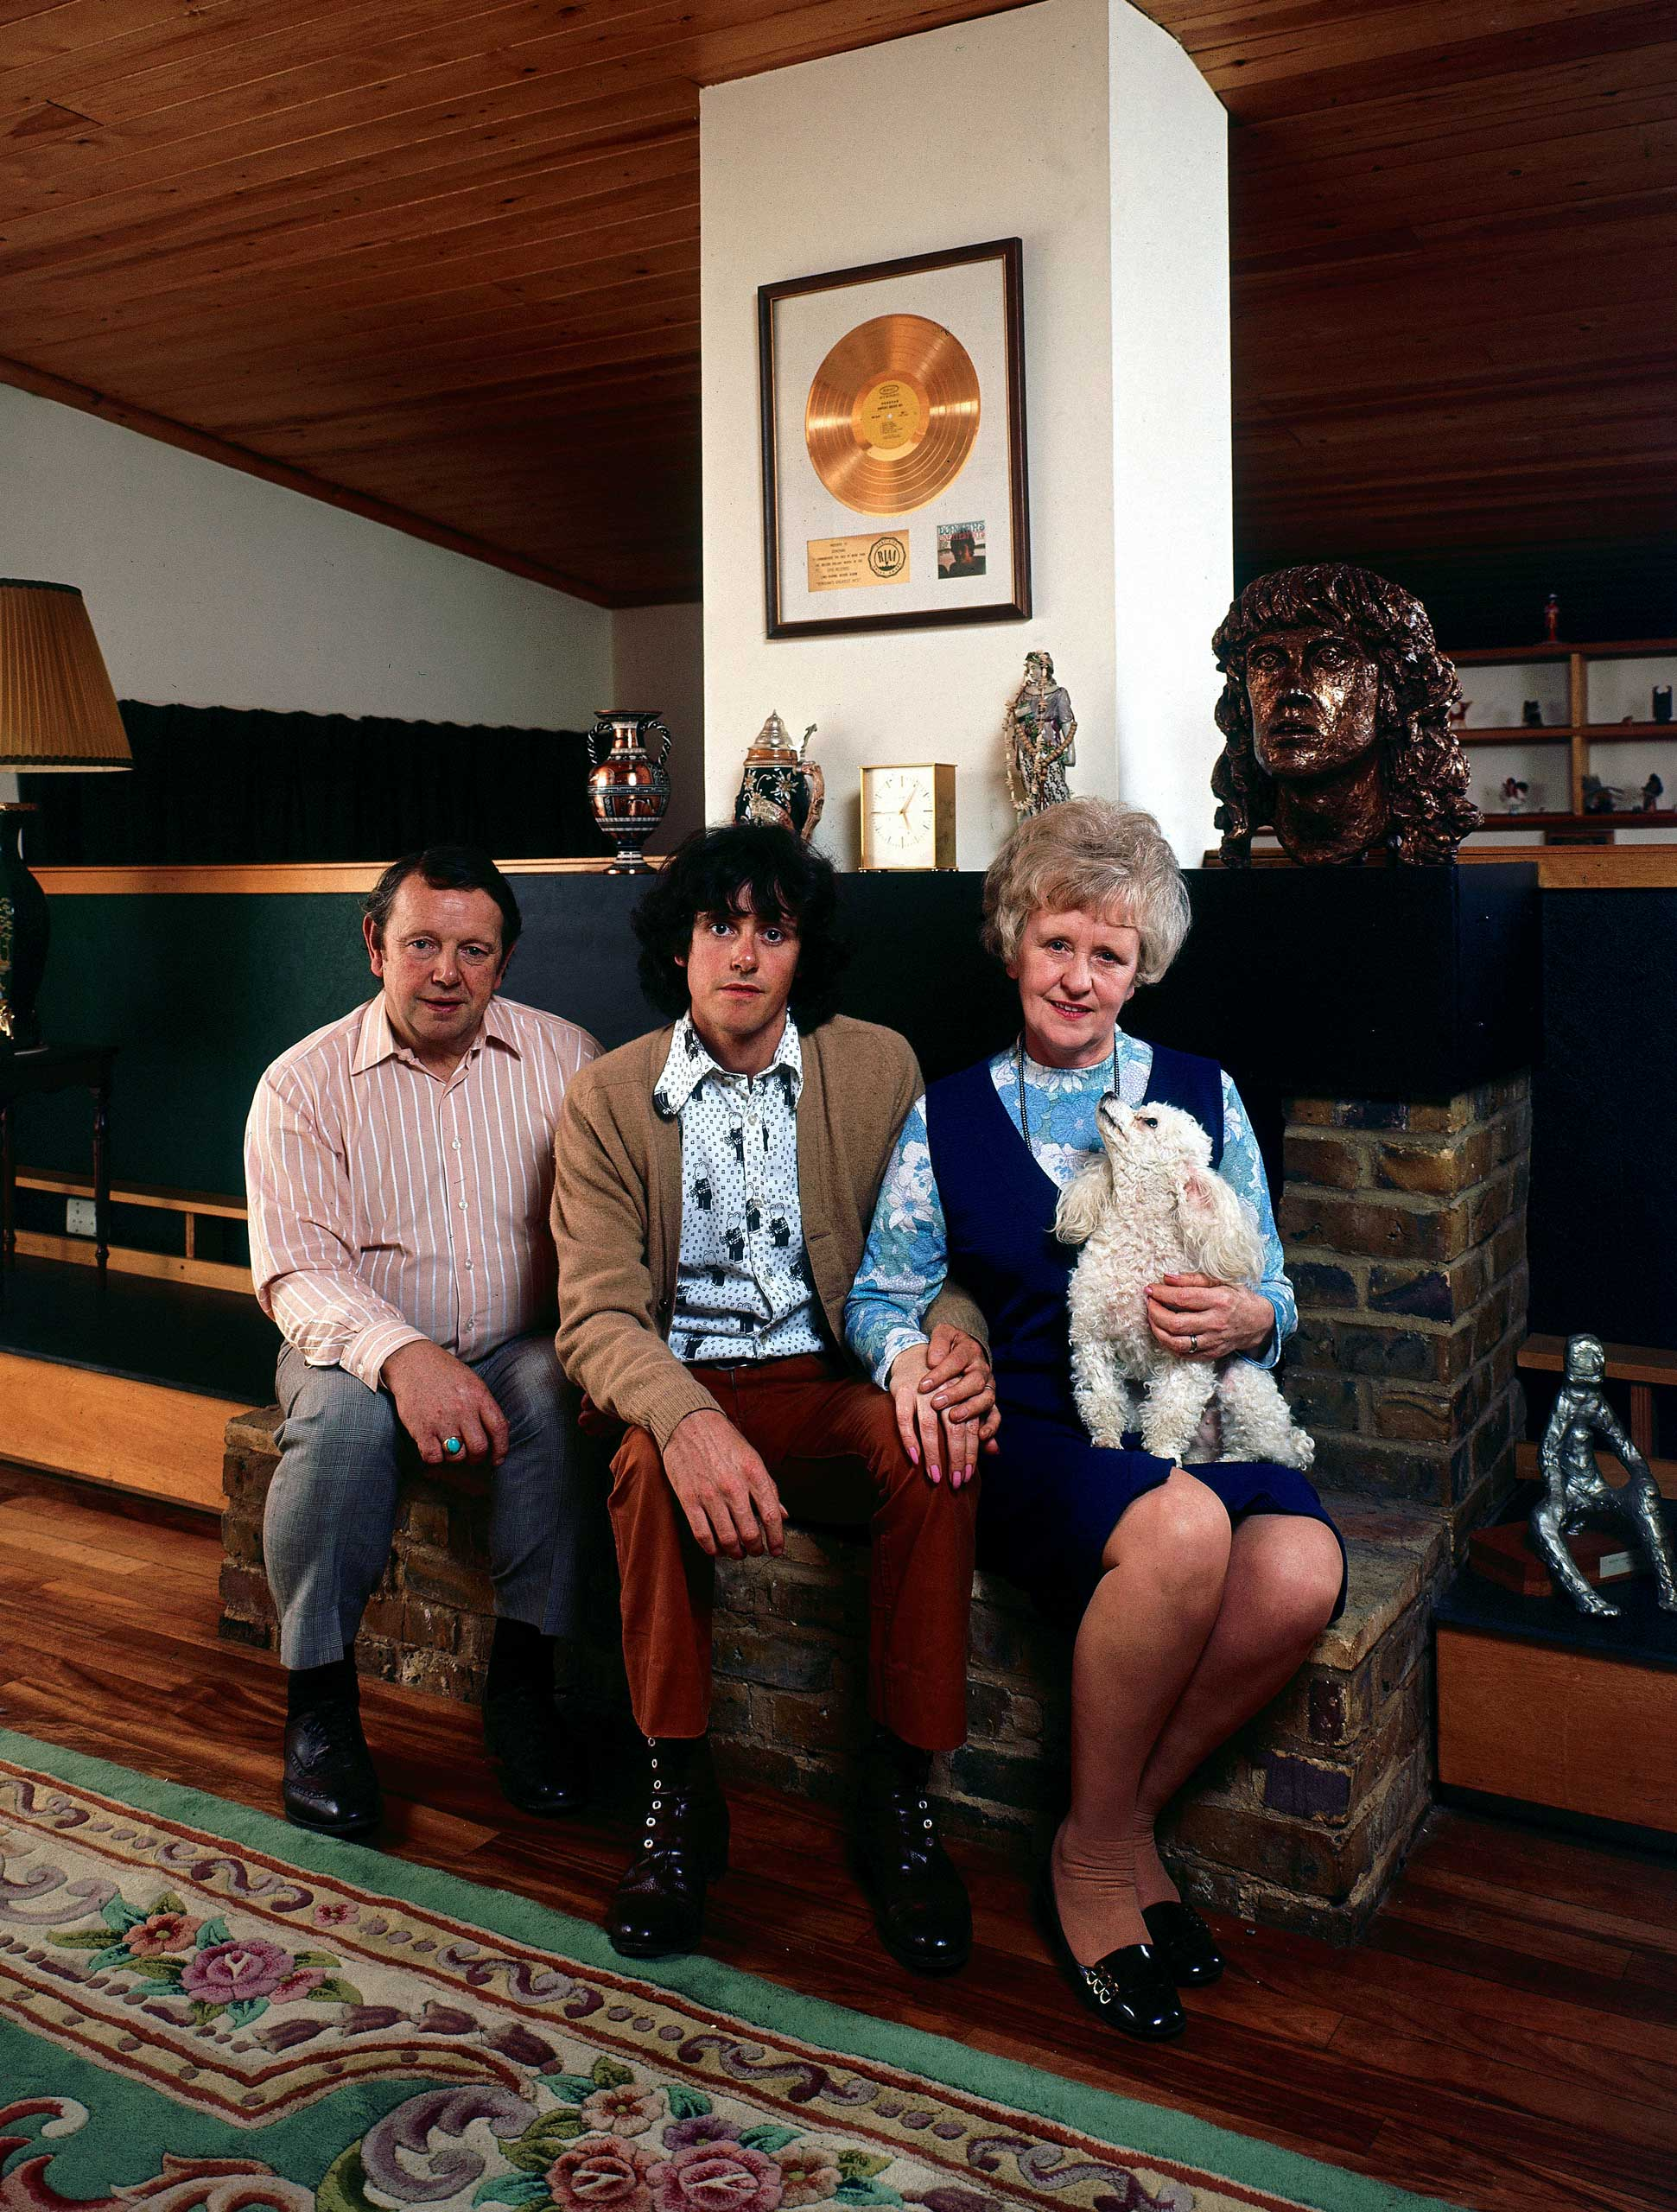 <b>Not published in LIFE.</b> Scottish folk musician Donovan and his parents, Donald and Winifred Leitch, England in 1970.